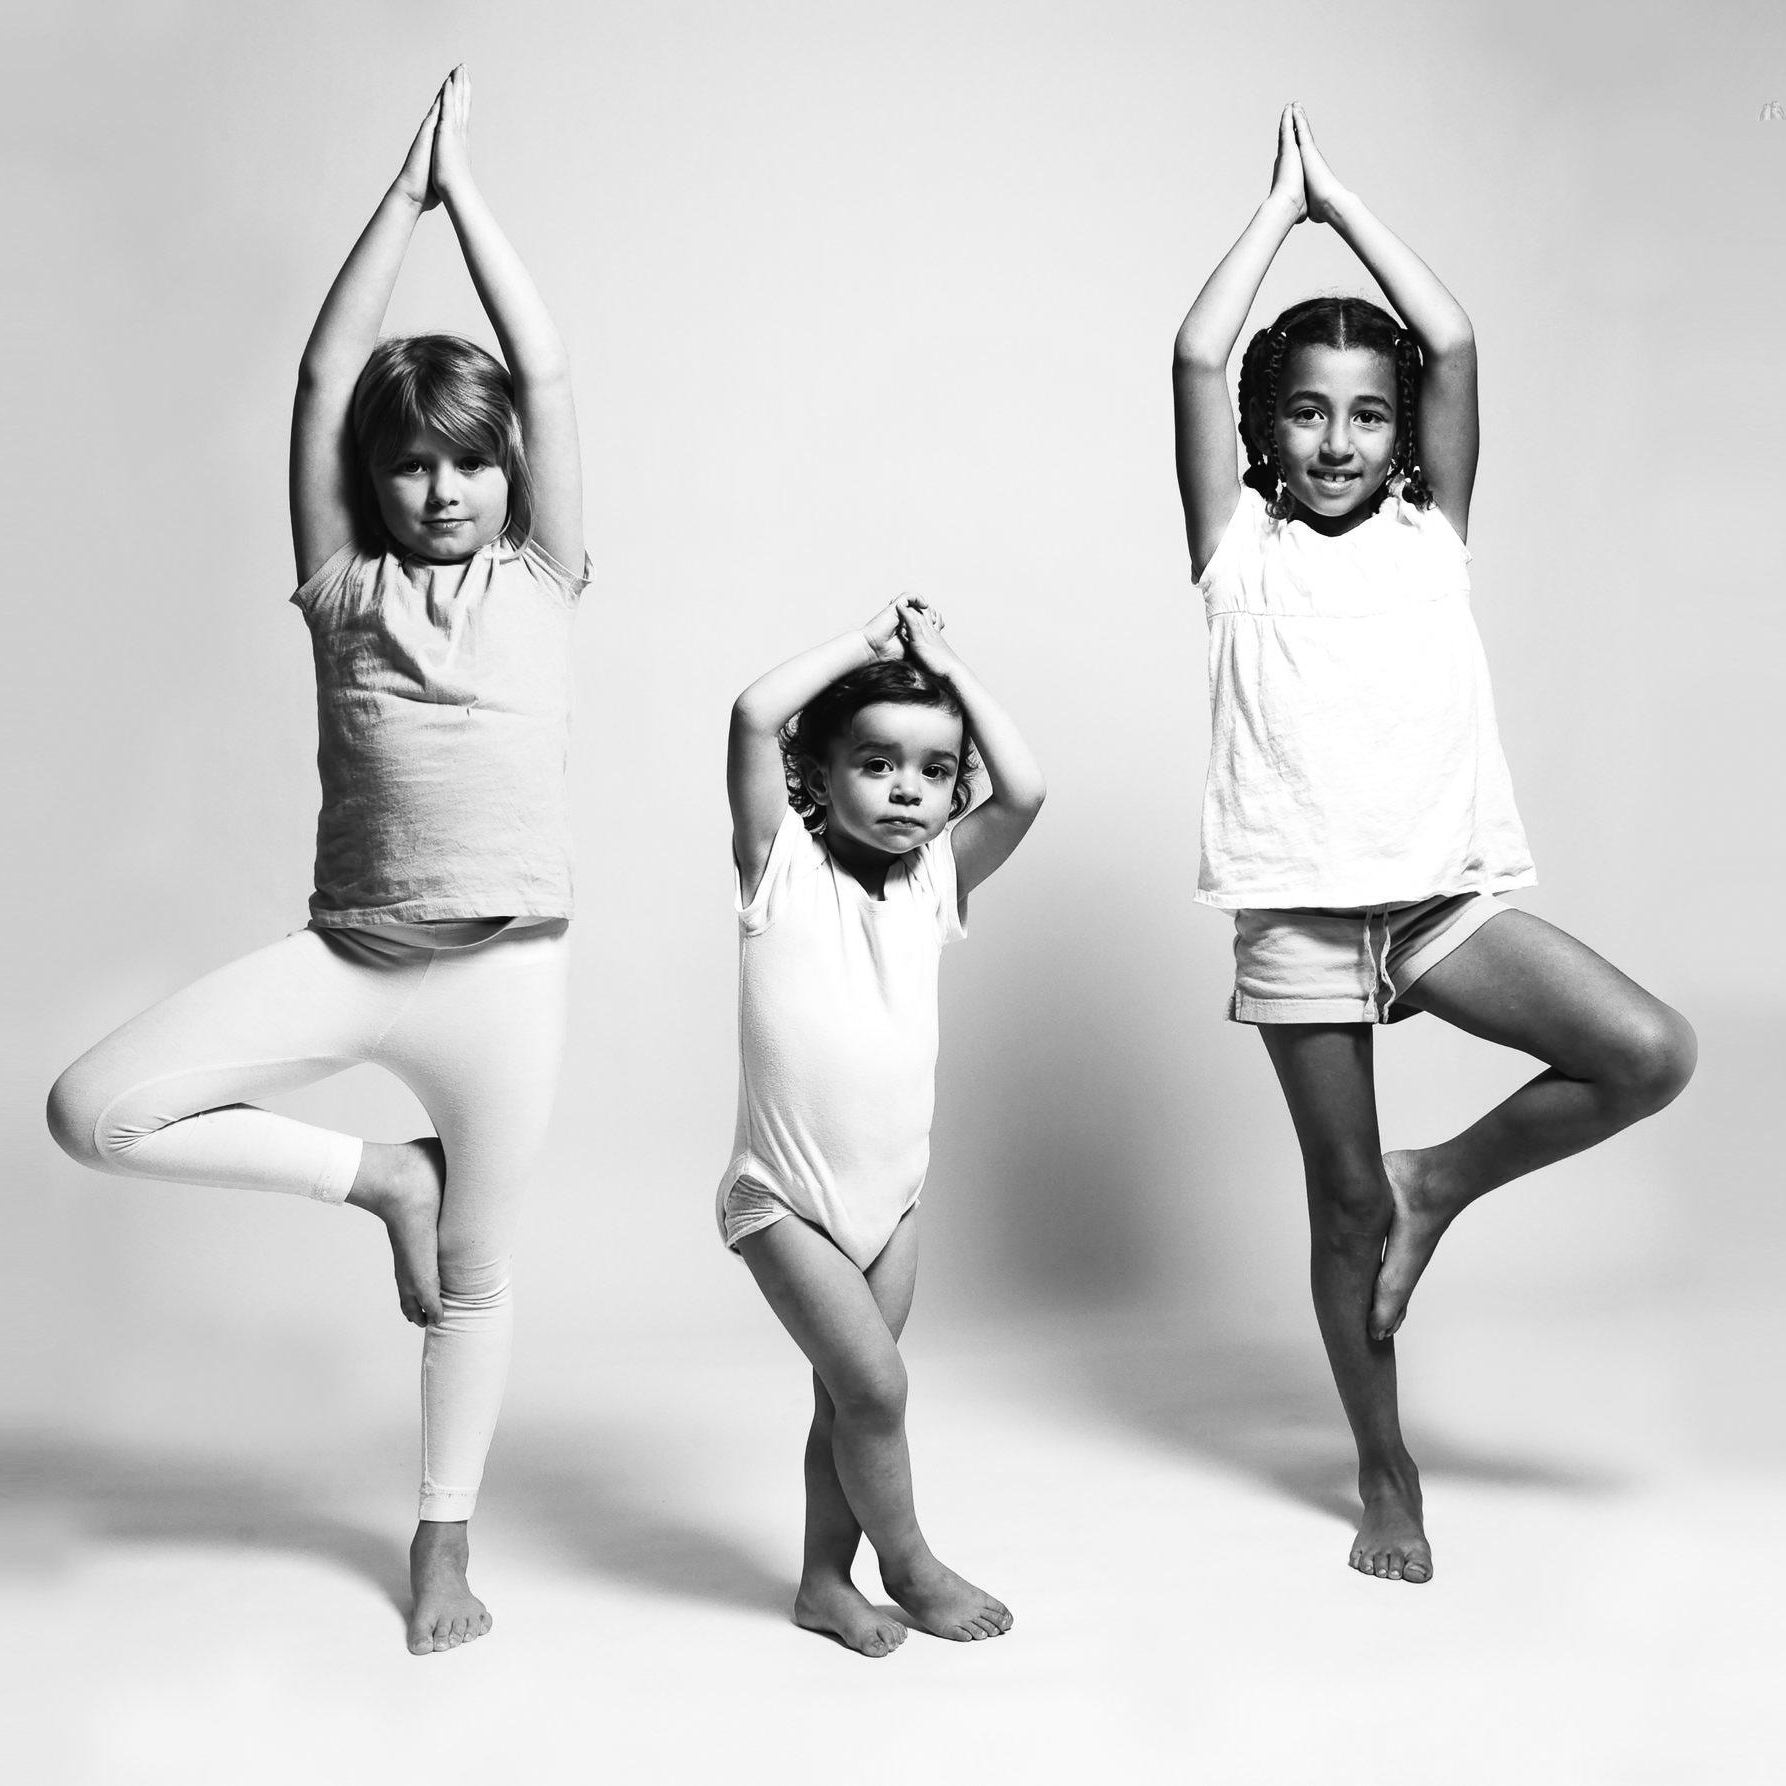 Dynamic, playful, and specifically geared classes instruct yoga for each age group. Pranayama, restorative poses, & relaxation offer students a chance to recharge and fill their well during the phases of life.   Offerings Include:  • Family Yoga Classes • Ages 3–6 Series • Ages 7–10 Series • Ages 11–13 Series • High School Series • Kids 3-Pack Introductory Offer